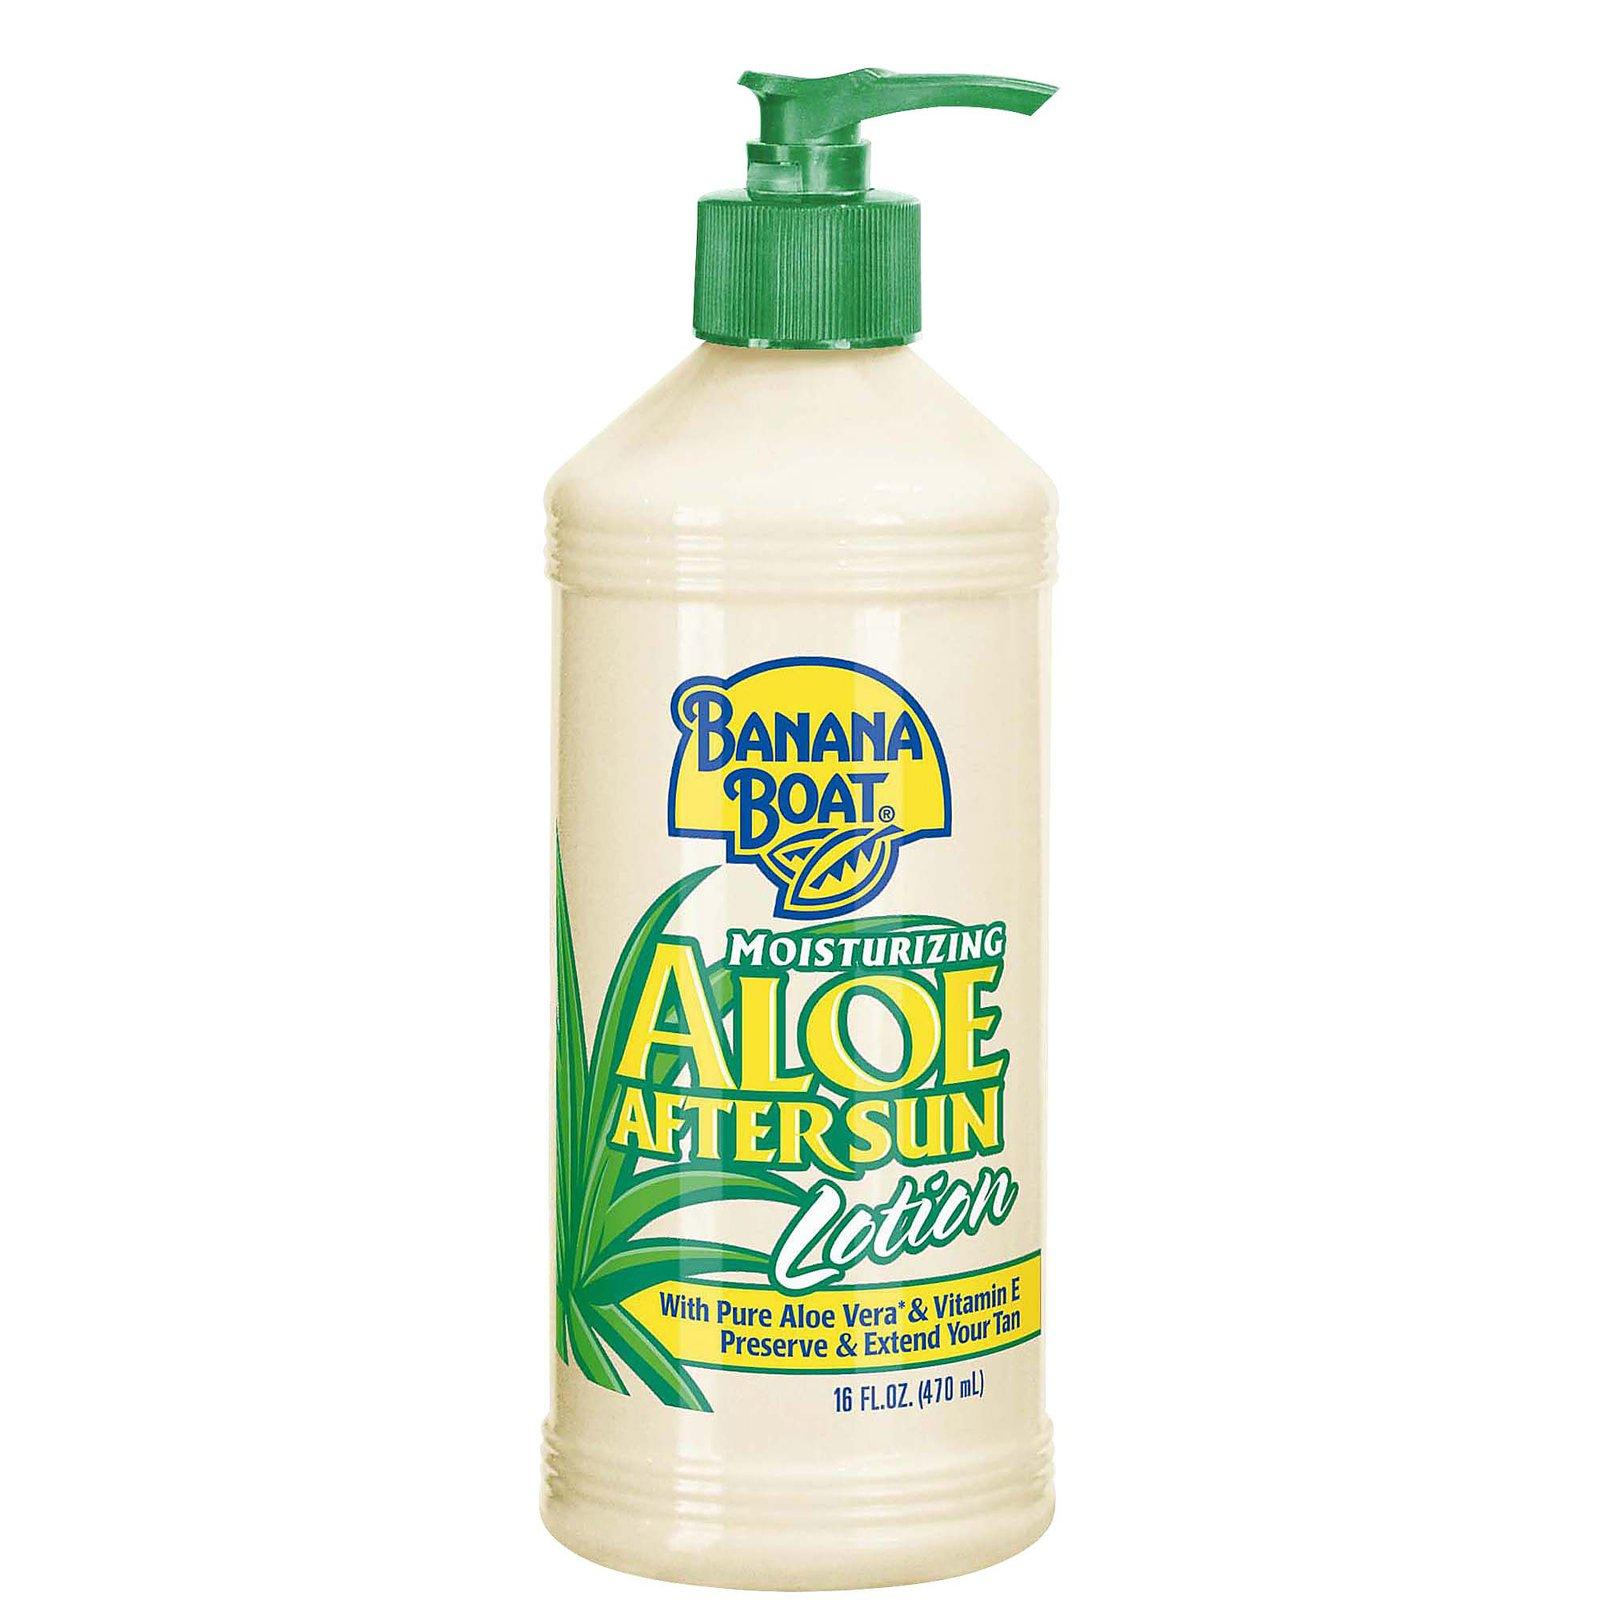 banana-boat-soothing-aloe-after-sun-lotion